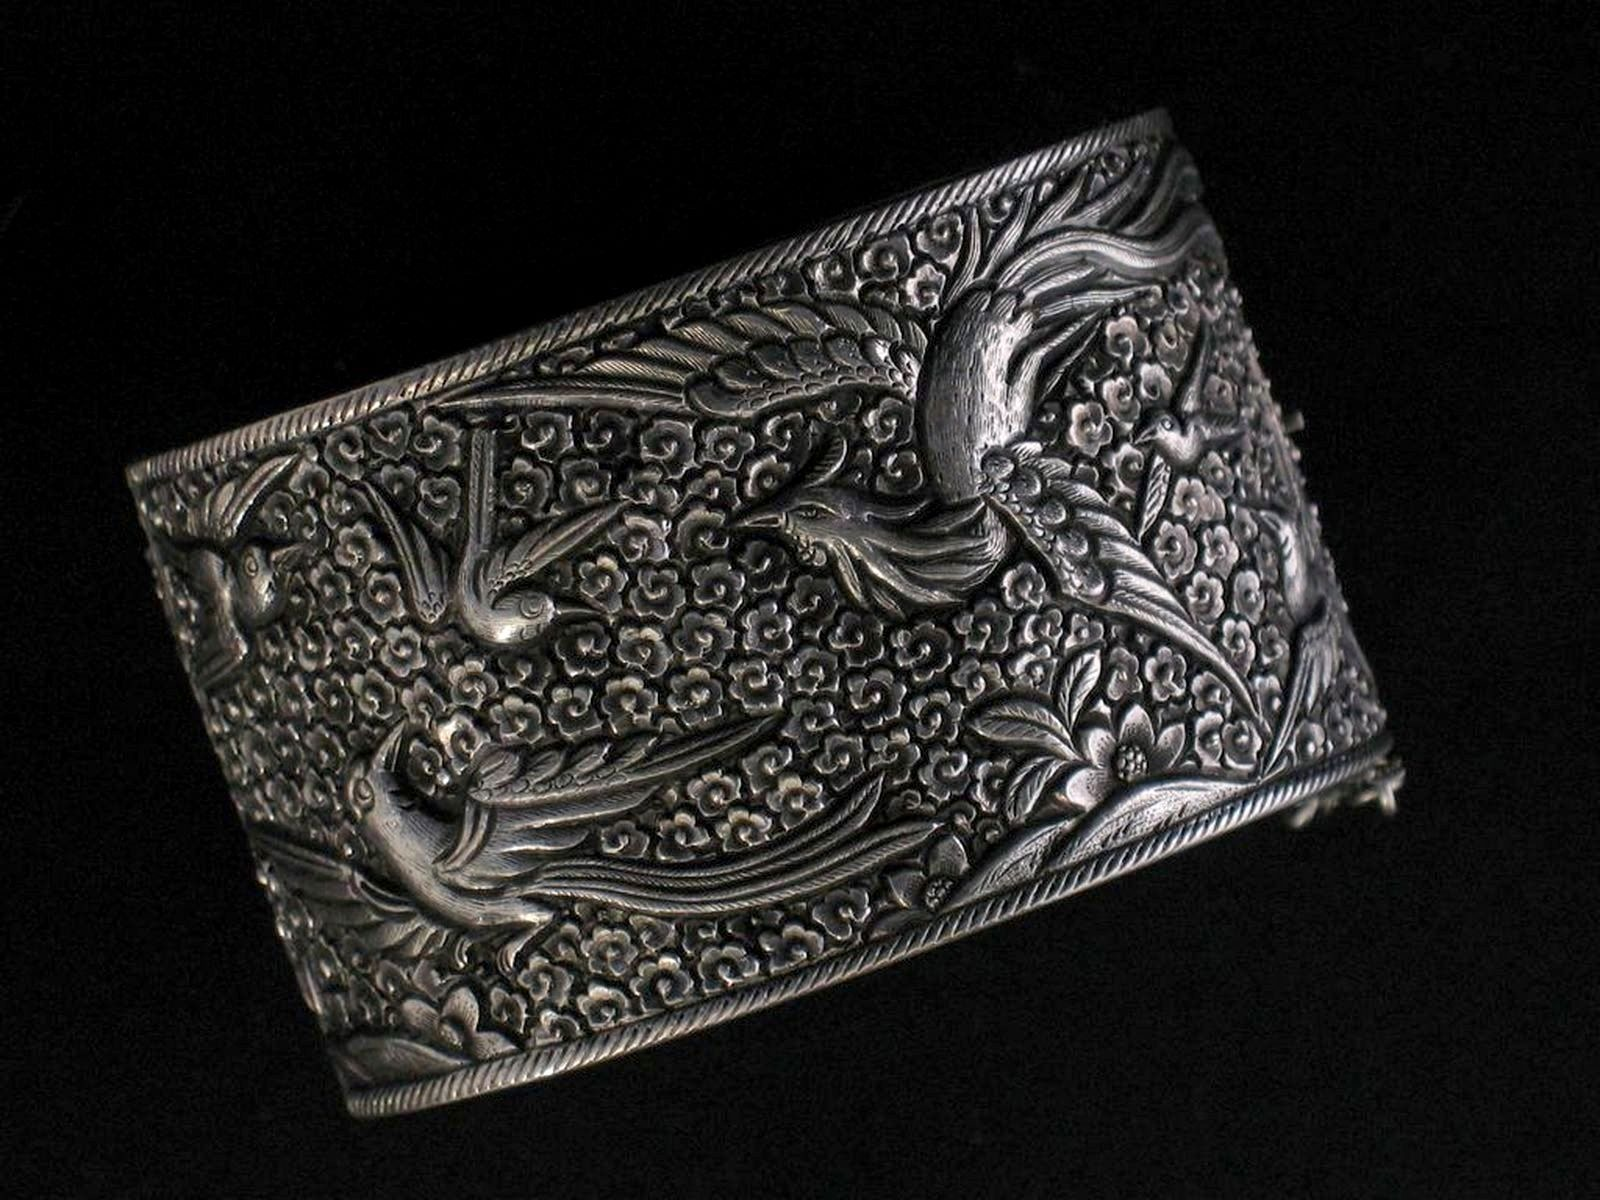 Chinese Silver He Xiangu Bracelet  PrivateCollection